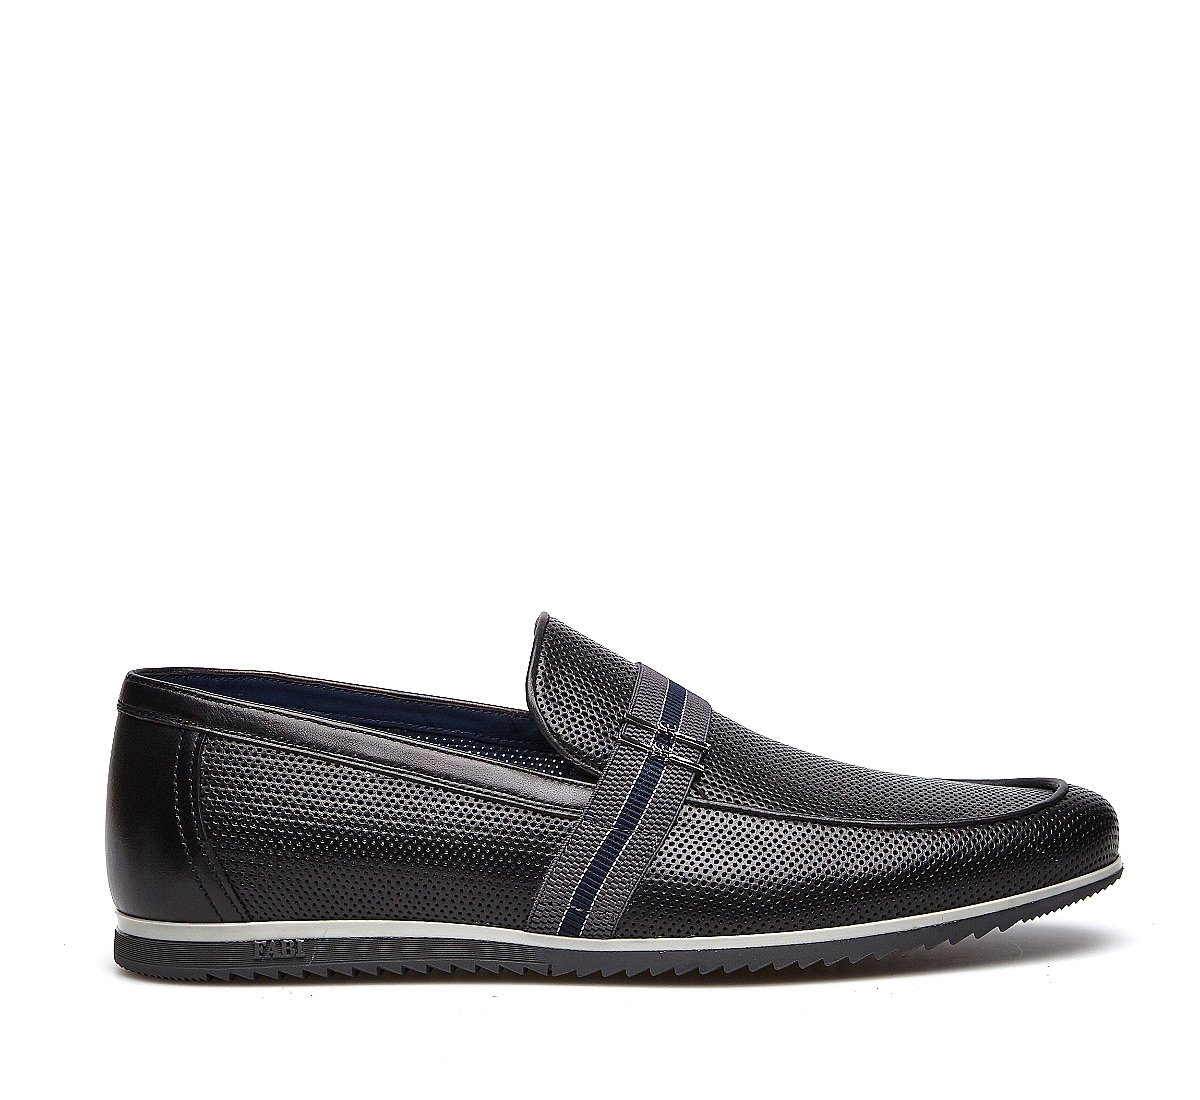 Perforated calfskin moccasins